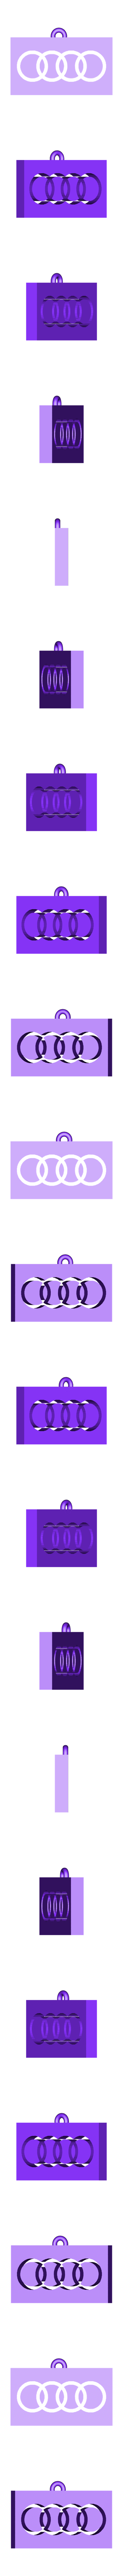 Porte Clé Audi.stl Download free STL file Audi Keychain • 3D printer template, 3dleofactory